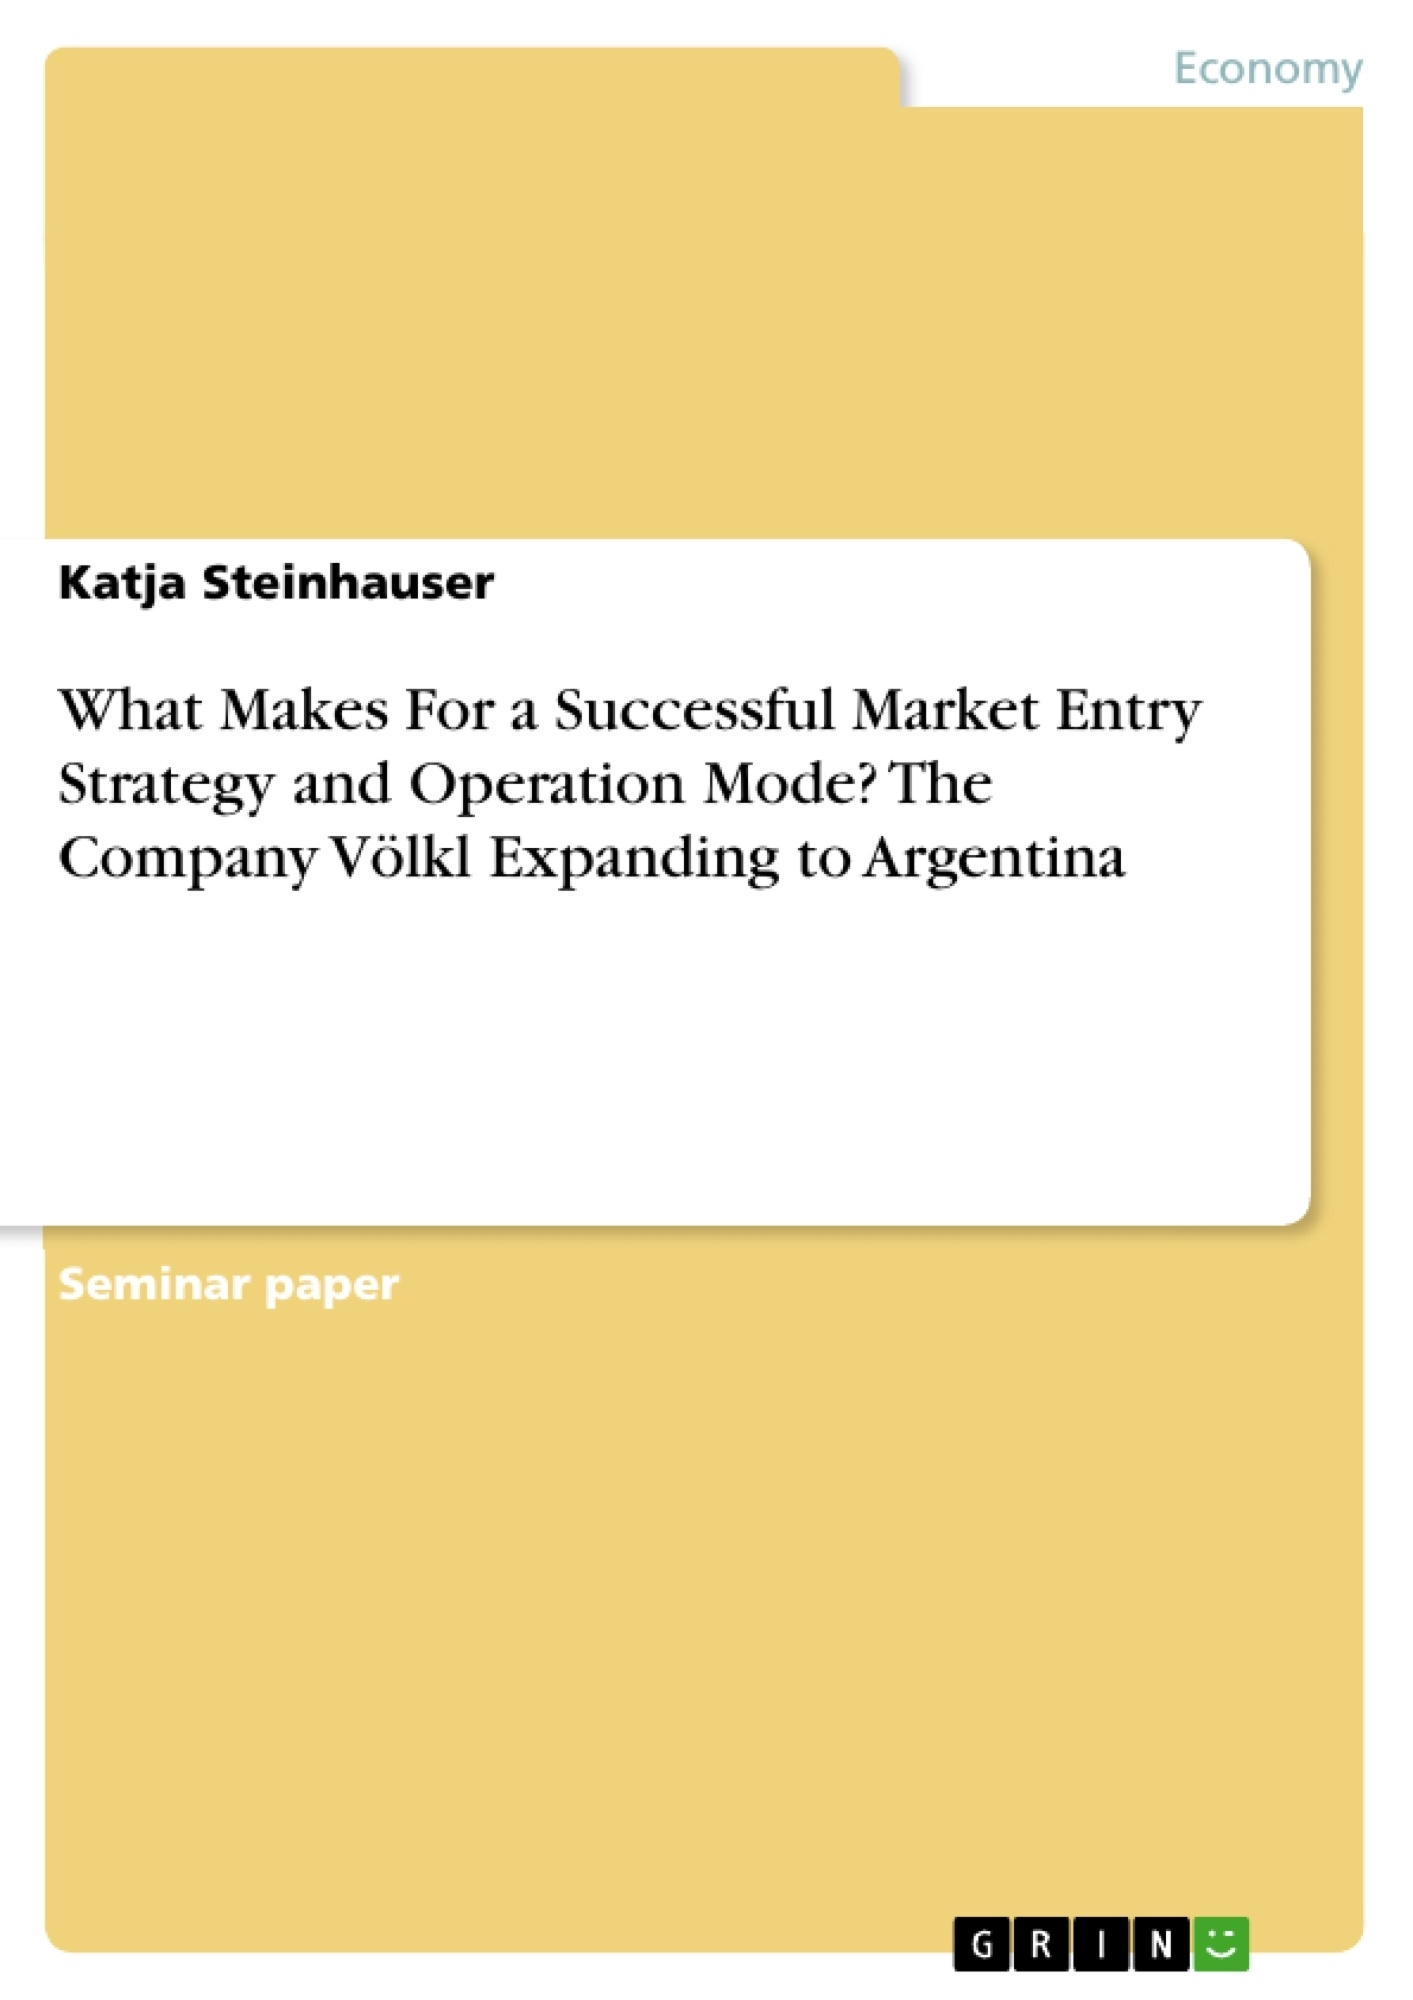 Title: What Makes For a Successful Market Entry Strategy and Operation Mode? The Company Völkl Expanding to Argentina